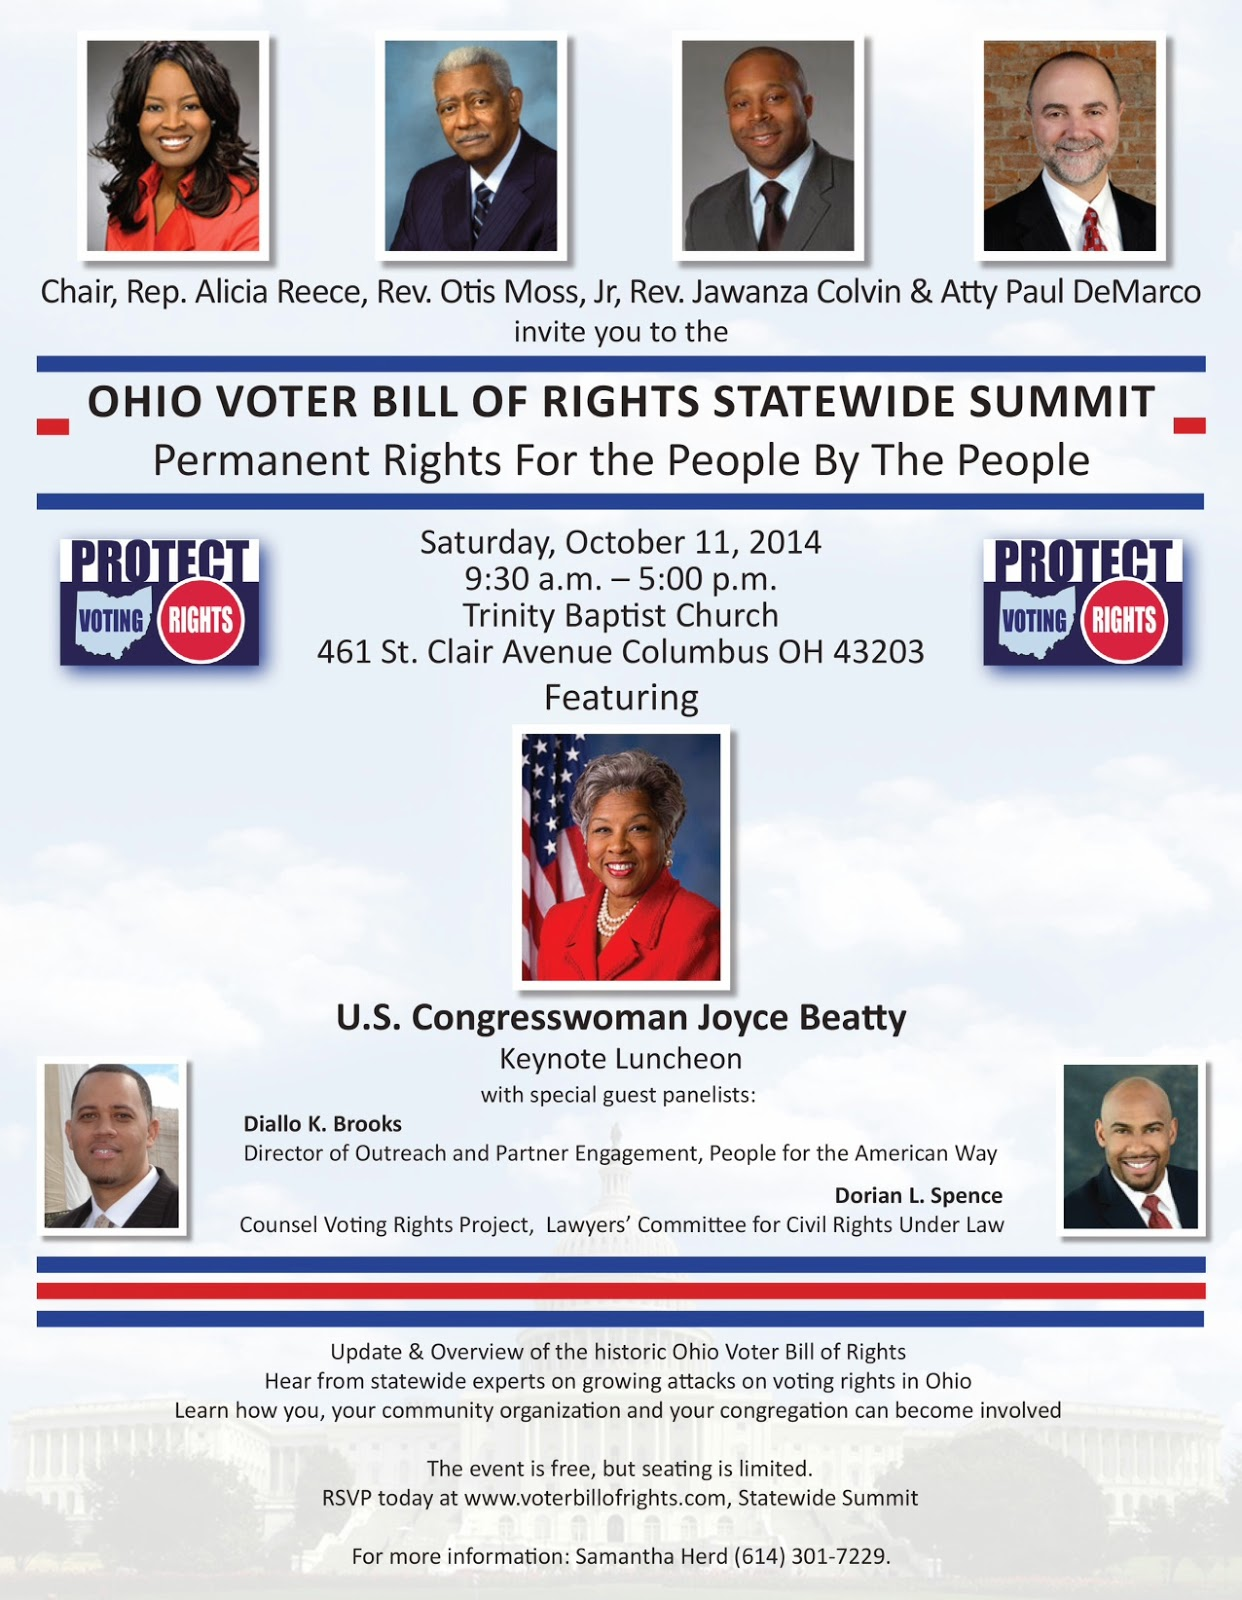 Ohio Voter Bill of Rights Statewide Summit